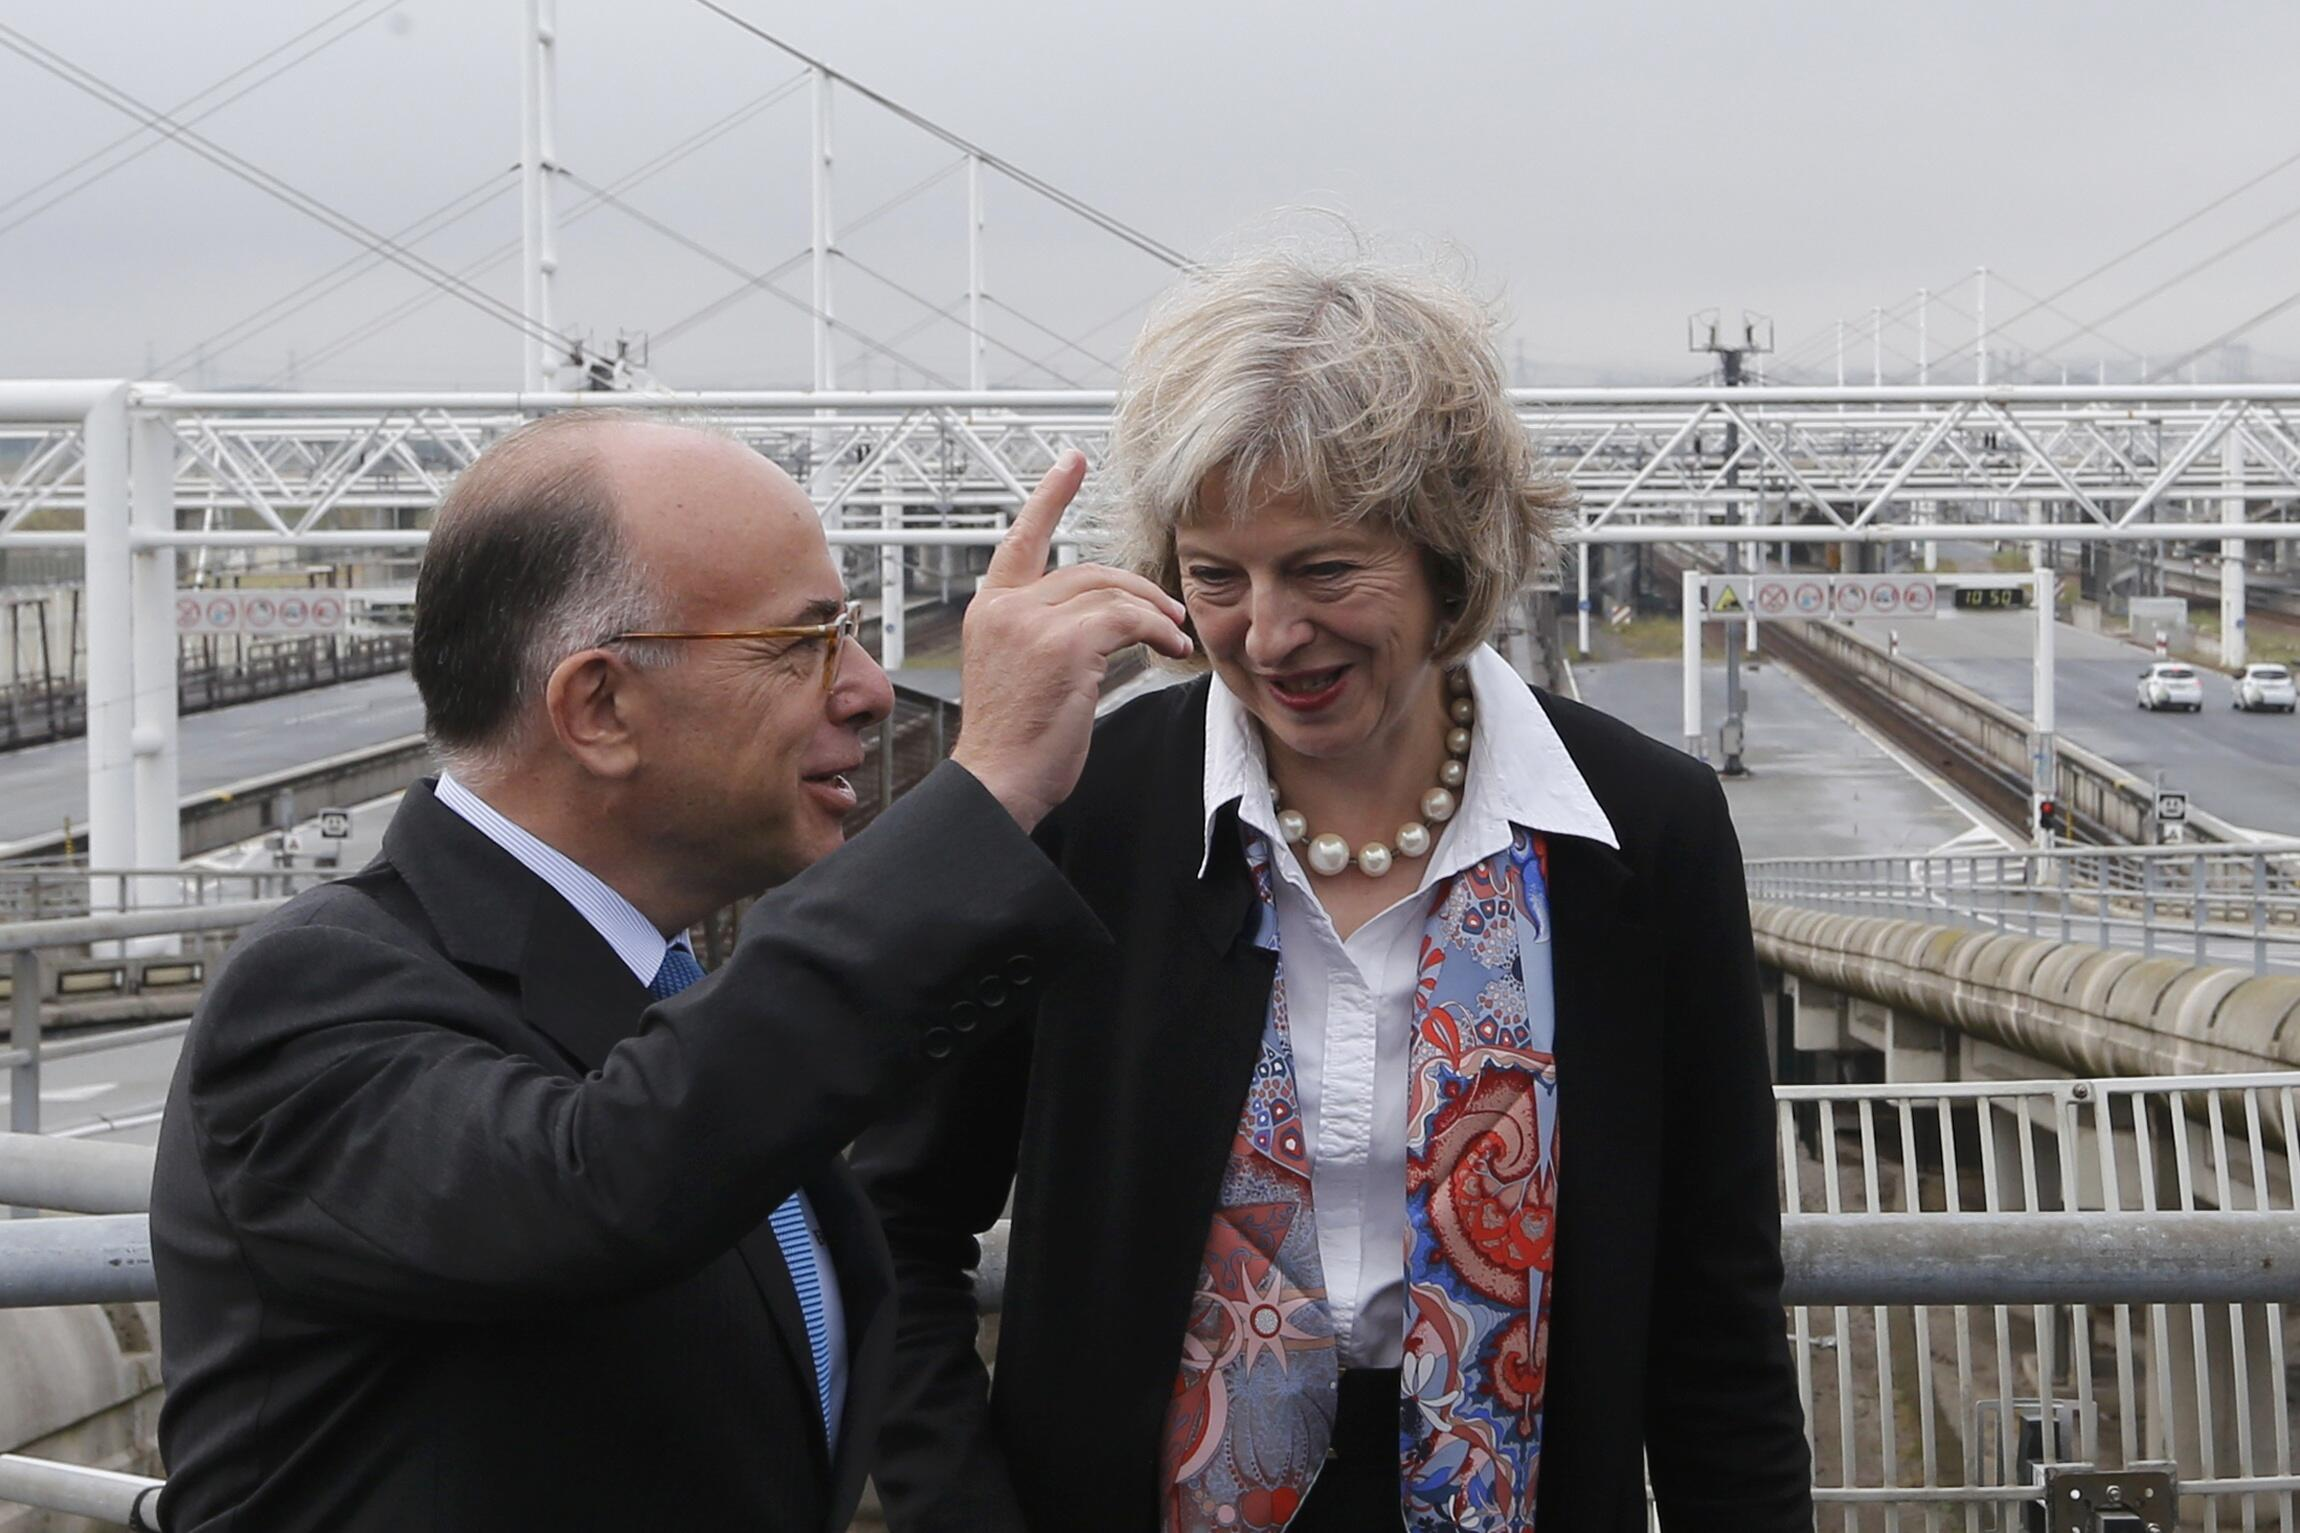 French Interior Minister Bernard Cazeneuve (L) and his Britain's Theresa May  on an overpass near the Eurotunnel entrance in Calais